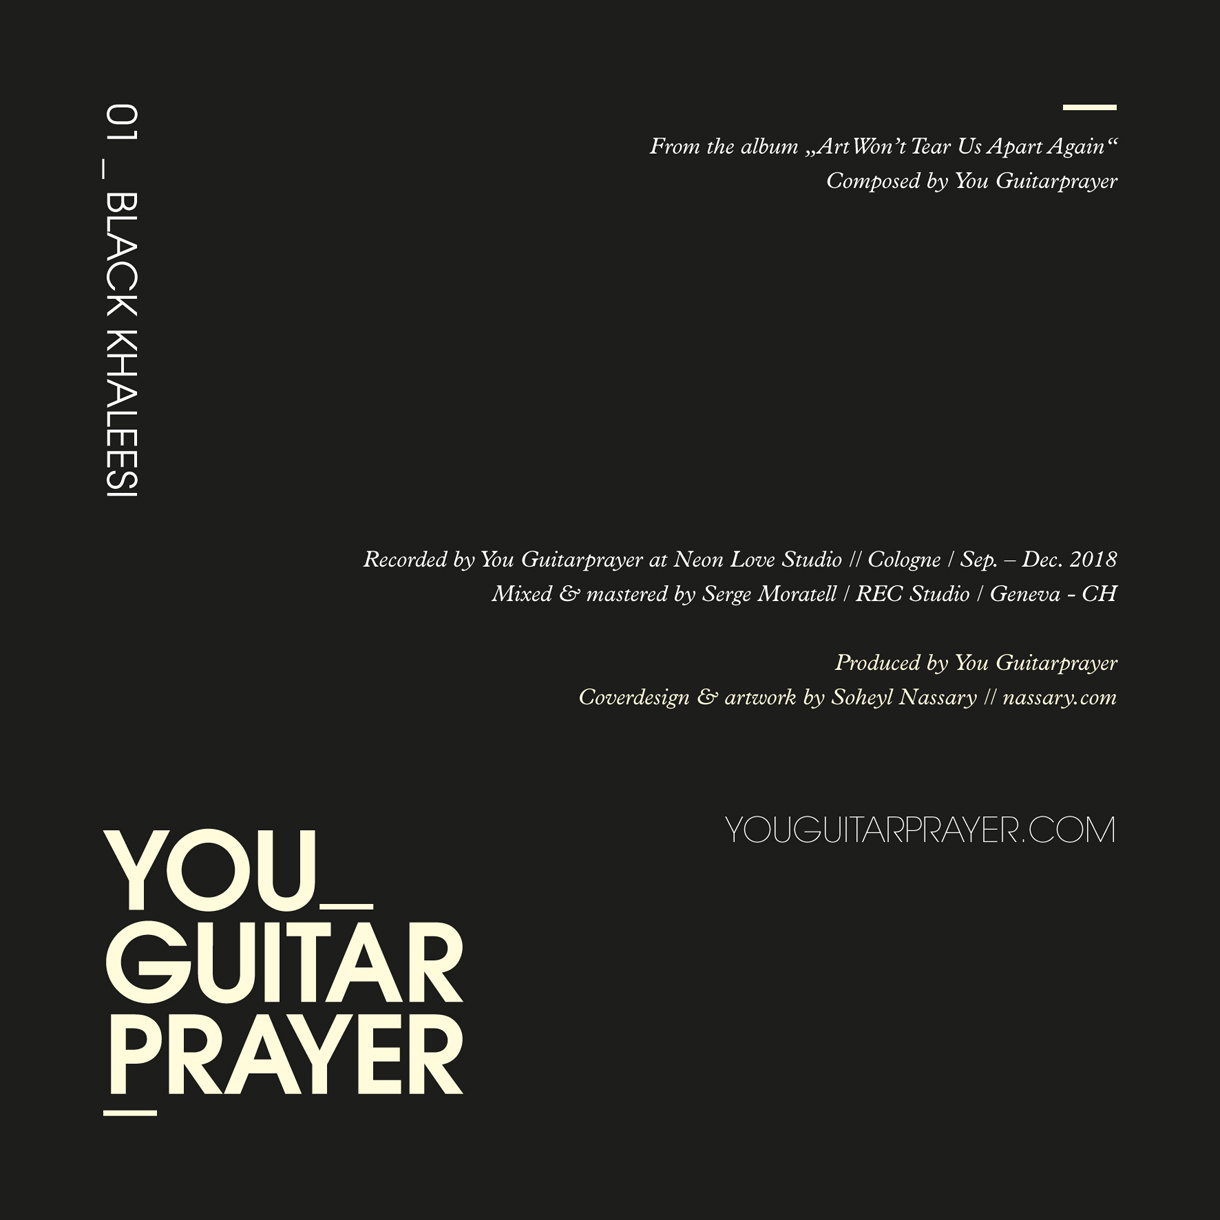 YOU GUITARPRAYER RELEASES